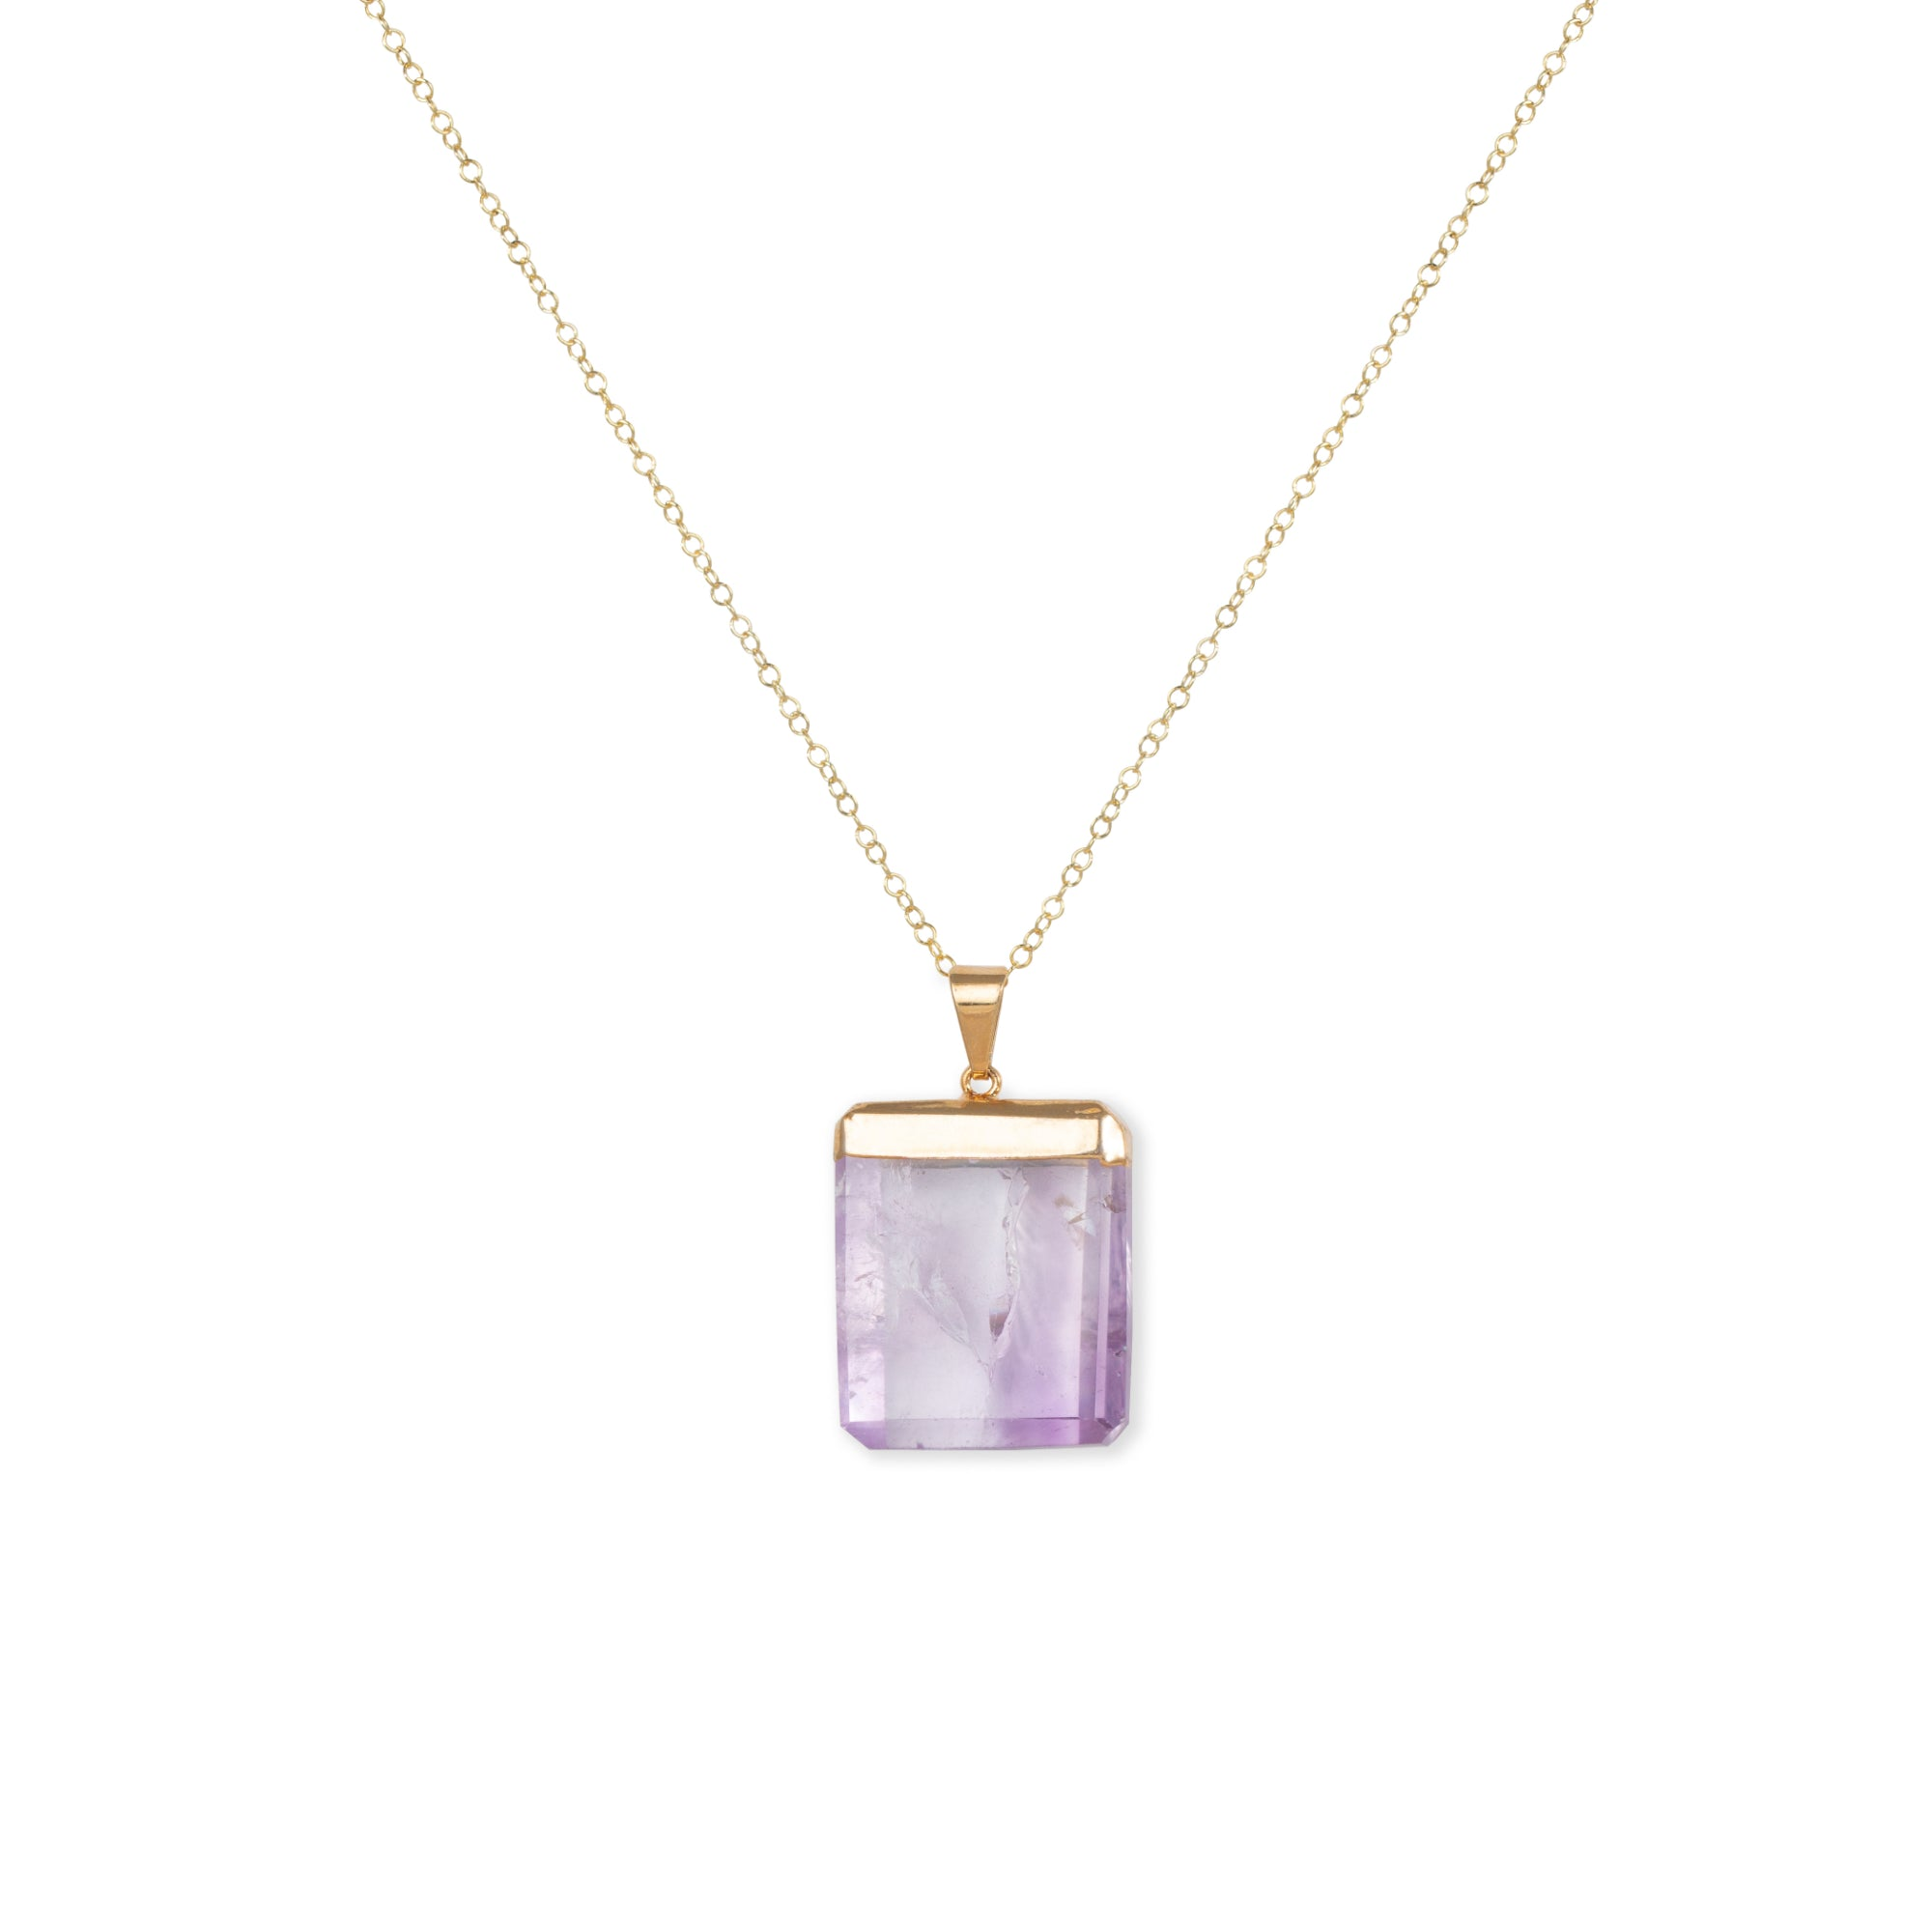 Close-up of Square Purple Amethyst and Gold Long Necklace 'I Am Protected' on White Background Photo by Asha Blooms